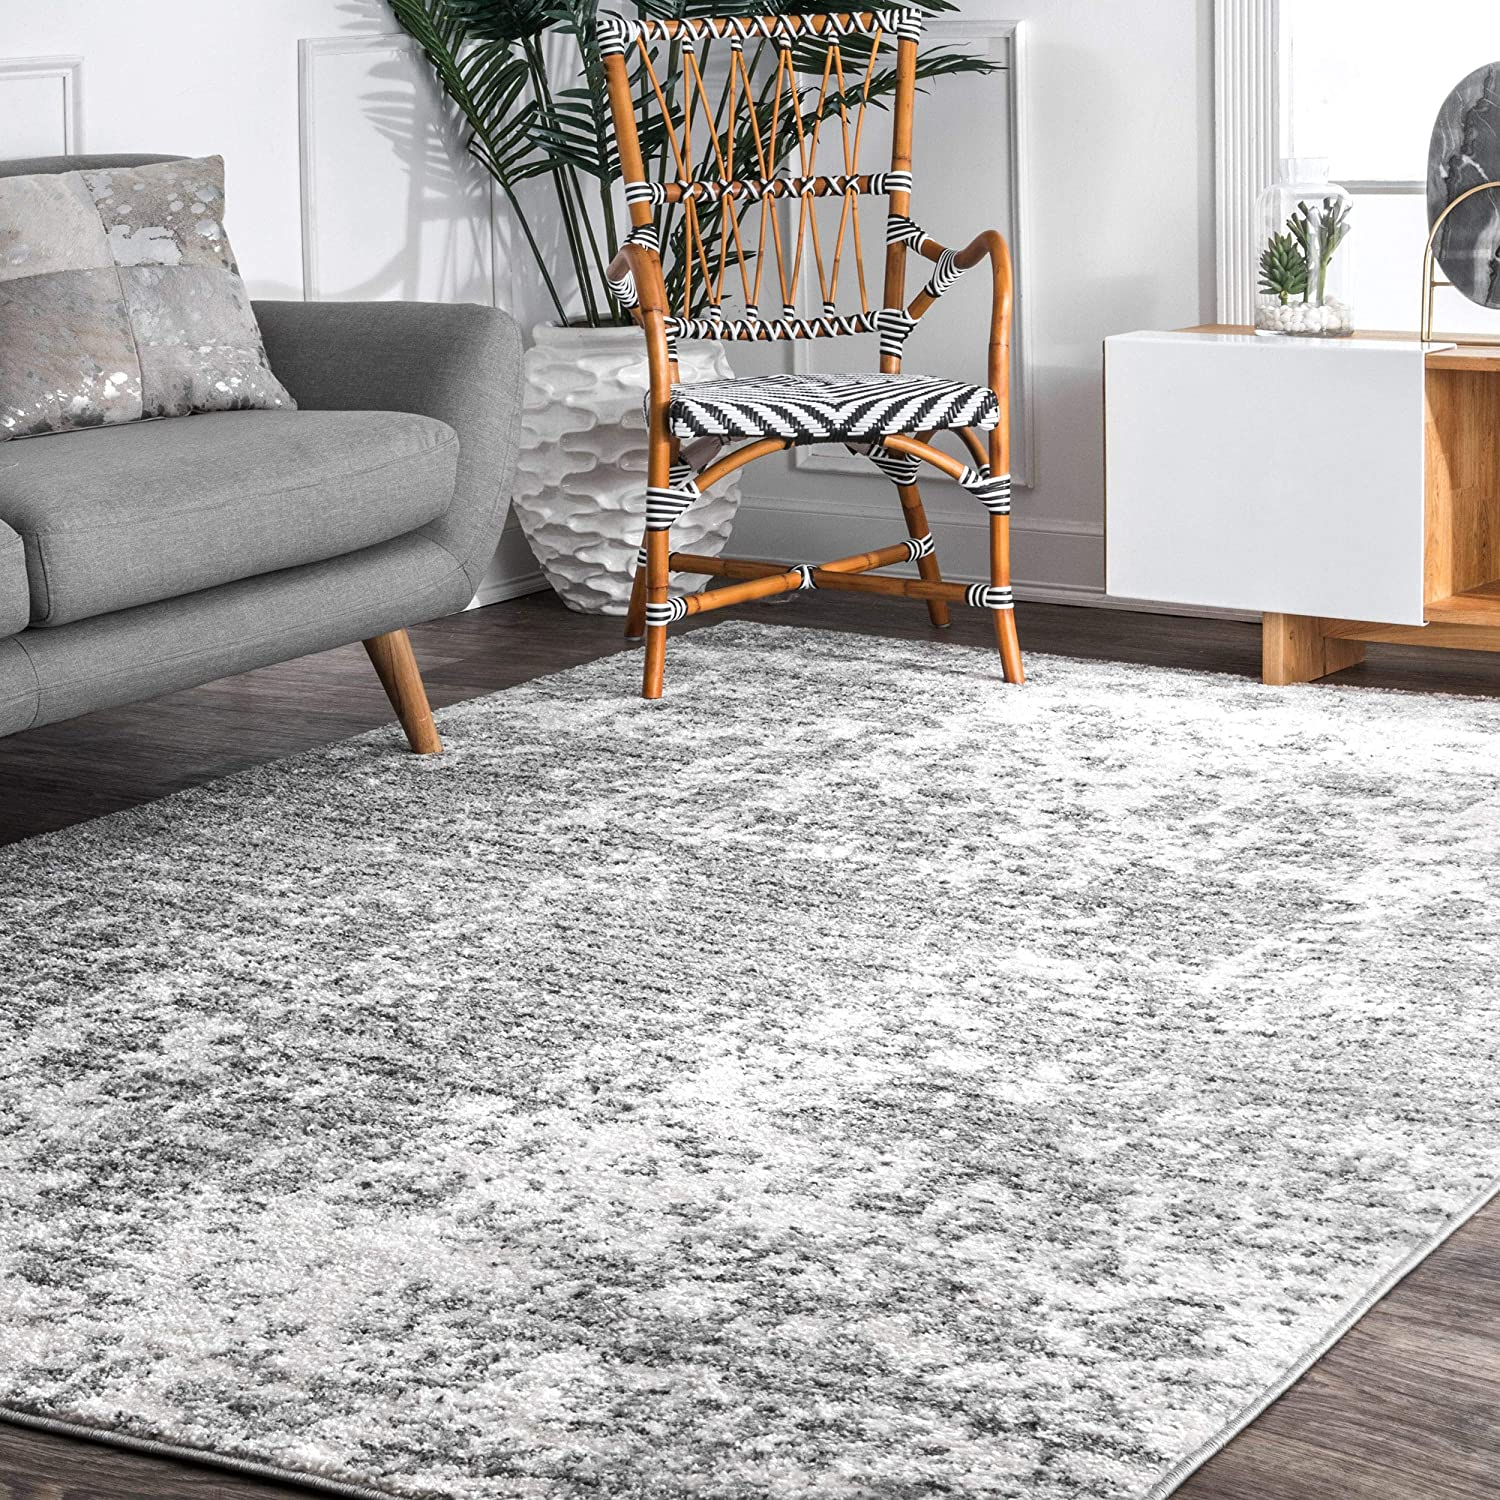 "nuLOOM BDSM08A Transitional Mist Shades Area Rug, 7' 6"" x 9' 6"", Gray"